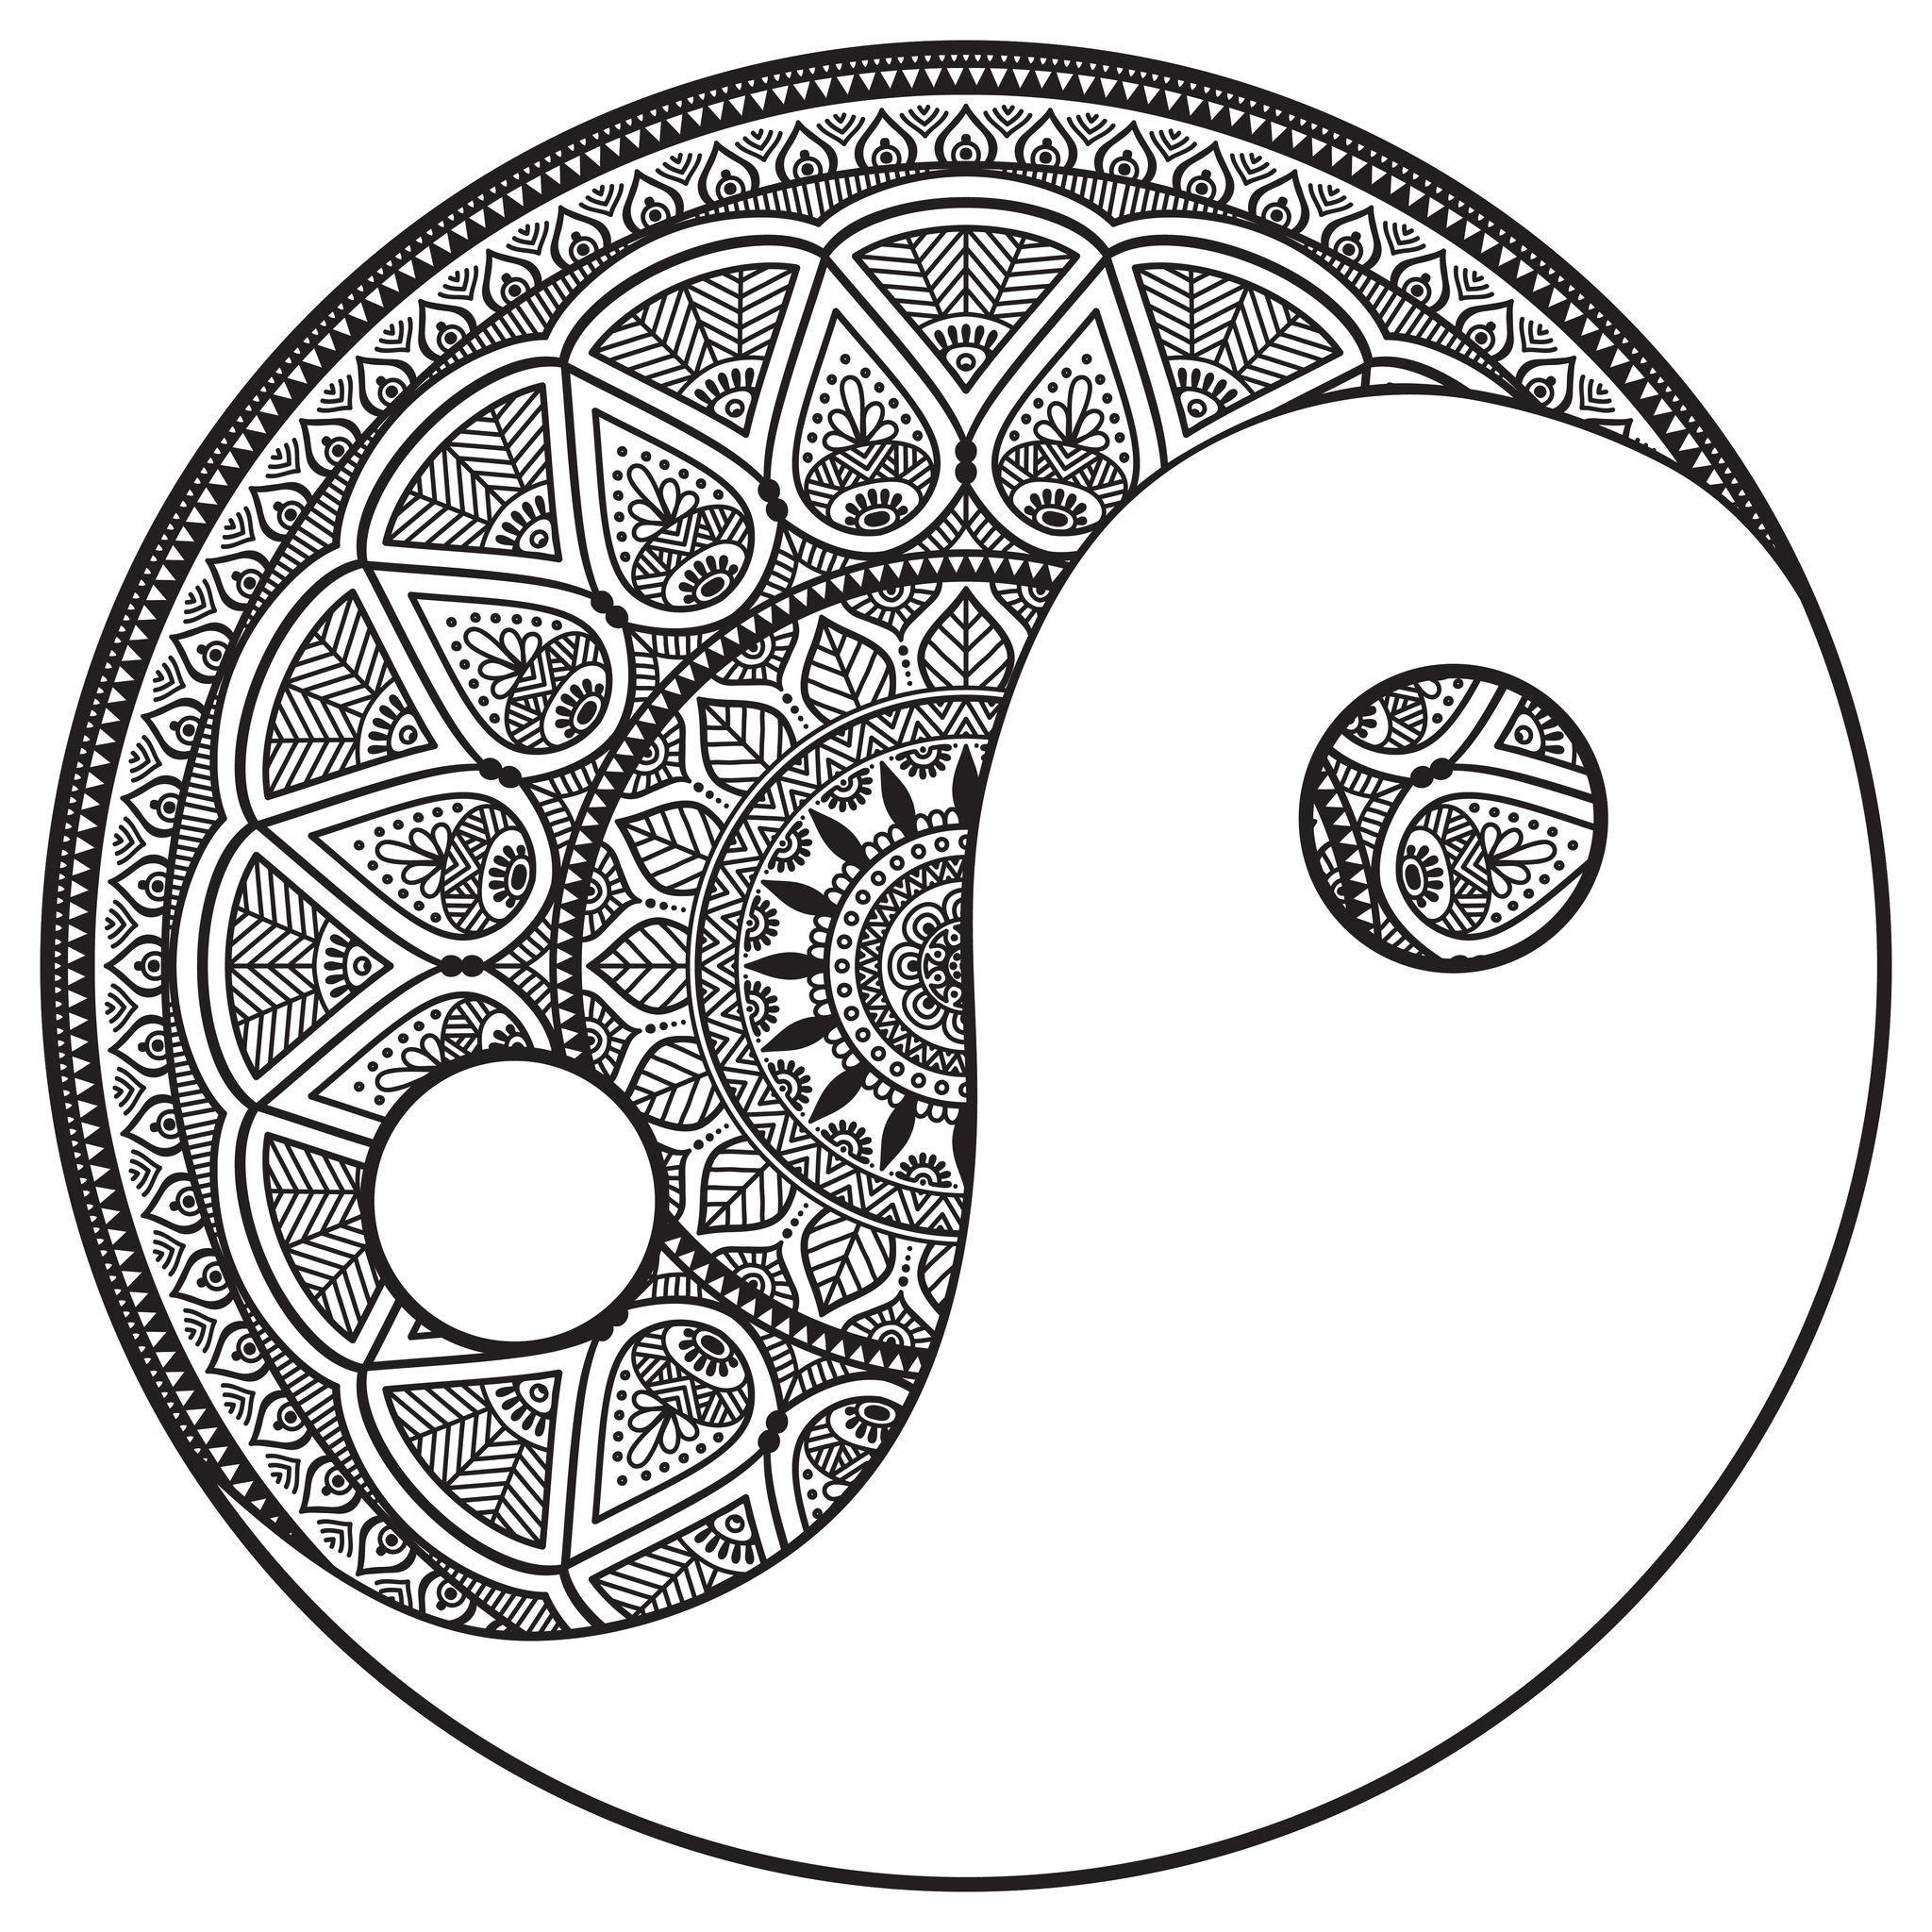 Mandala yin and yang to color by snezh Mandalas Coloring pages